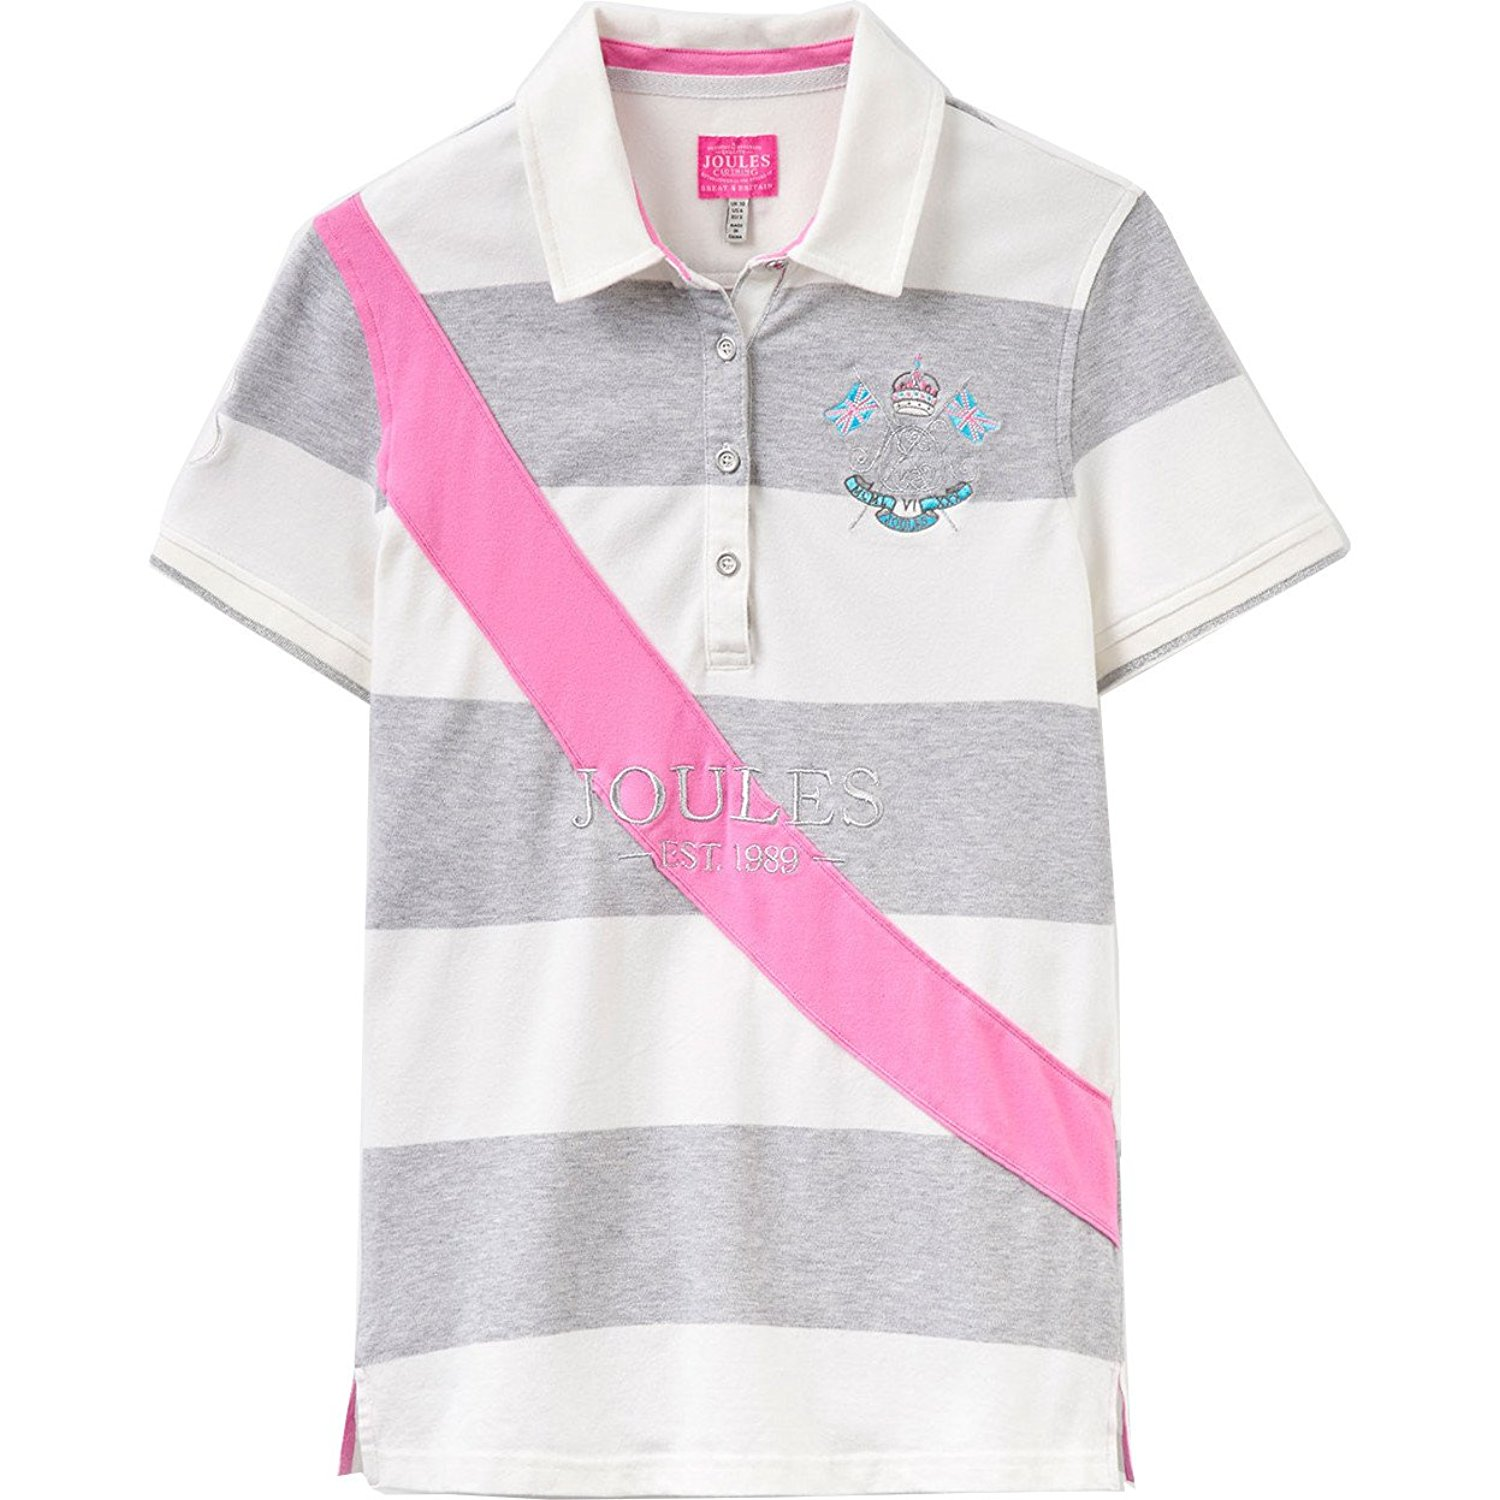 7f80d68268f23 Cheap Joules Polo, find Joules Polo deals on line at Alibaba.com